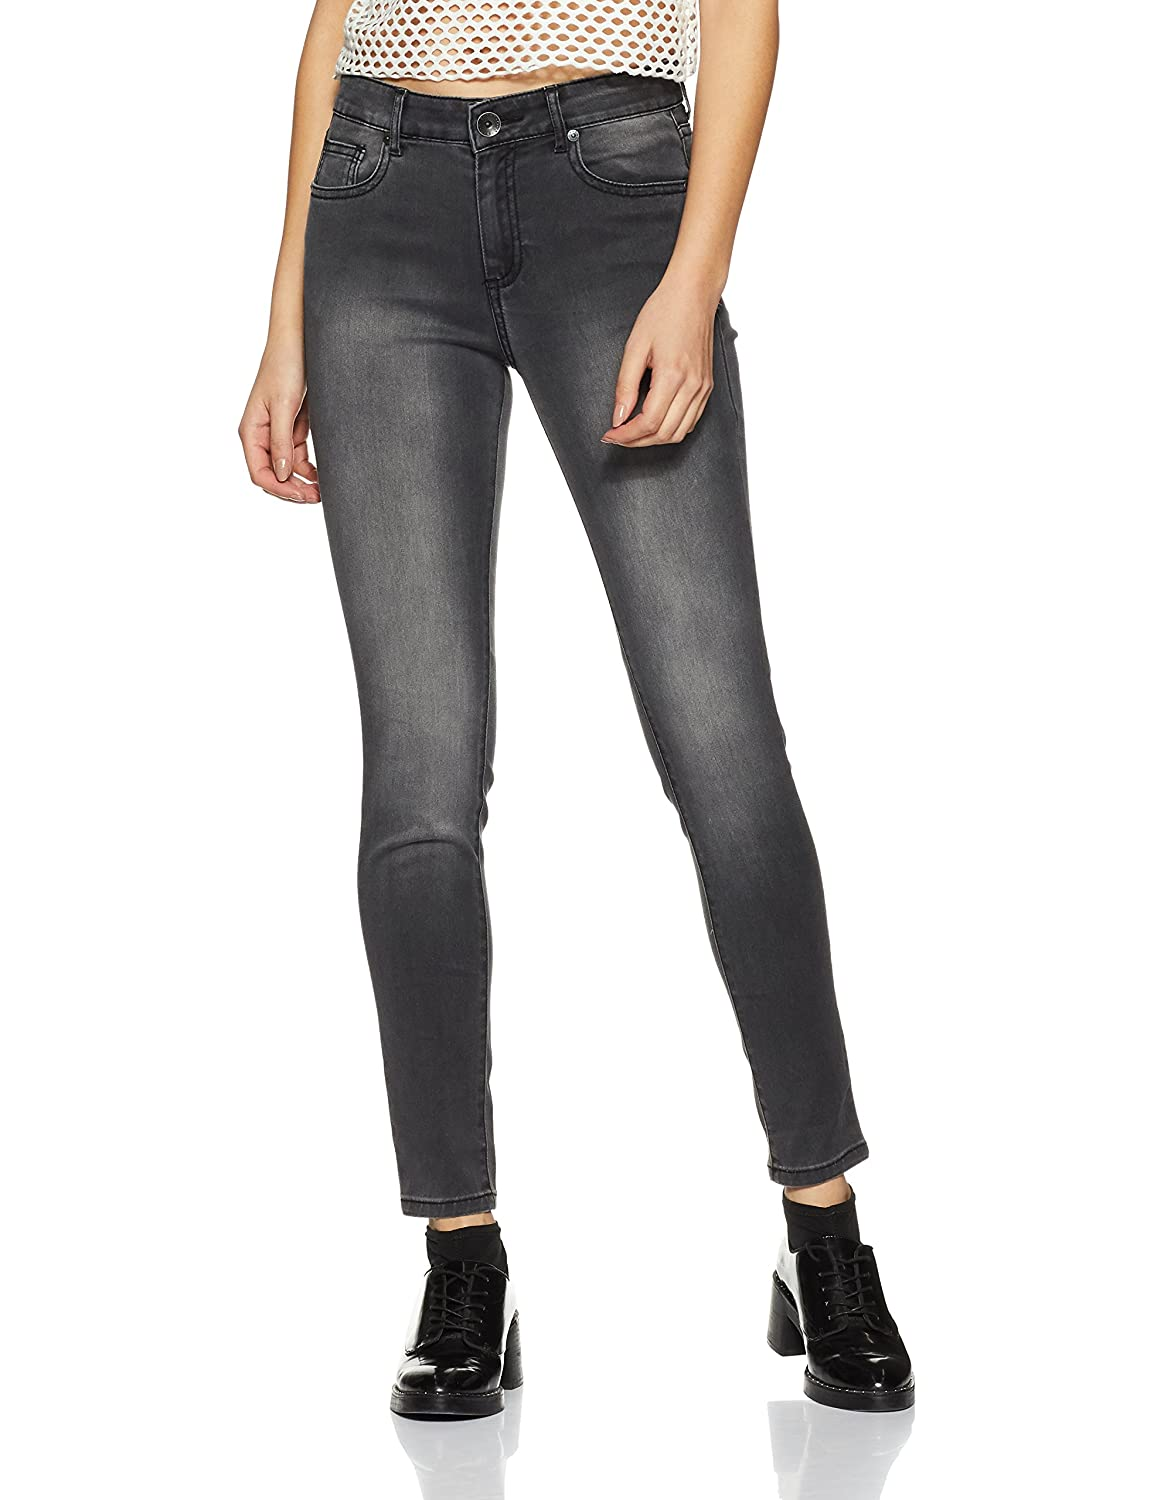 United Colors of Benetton Women's Skinny Fit Jeans